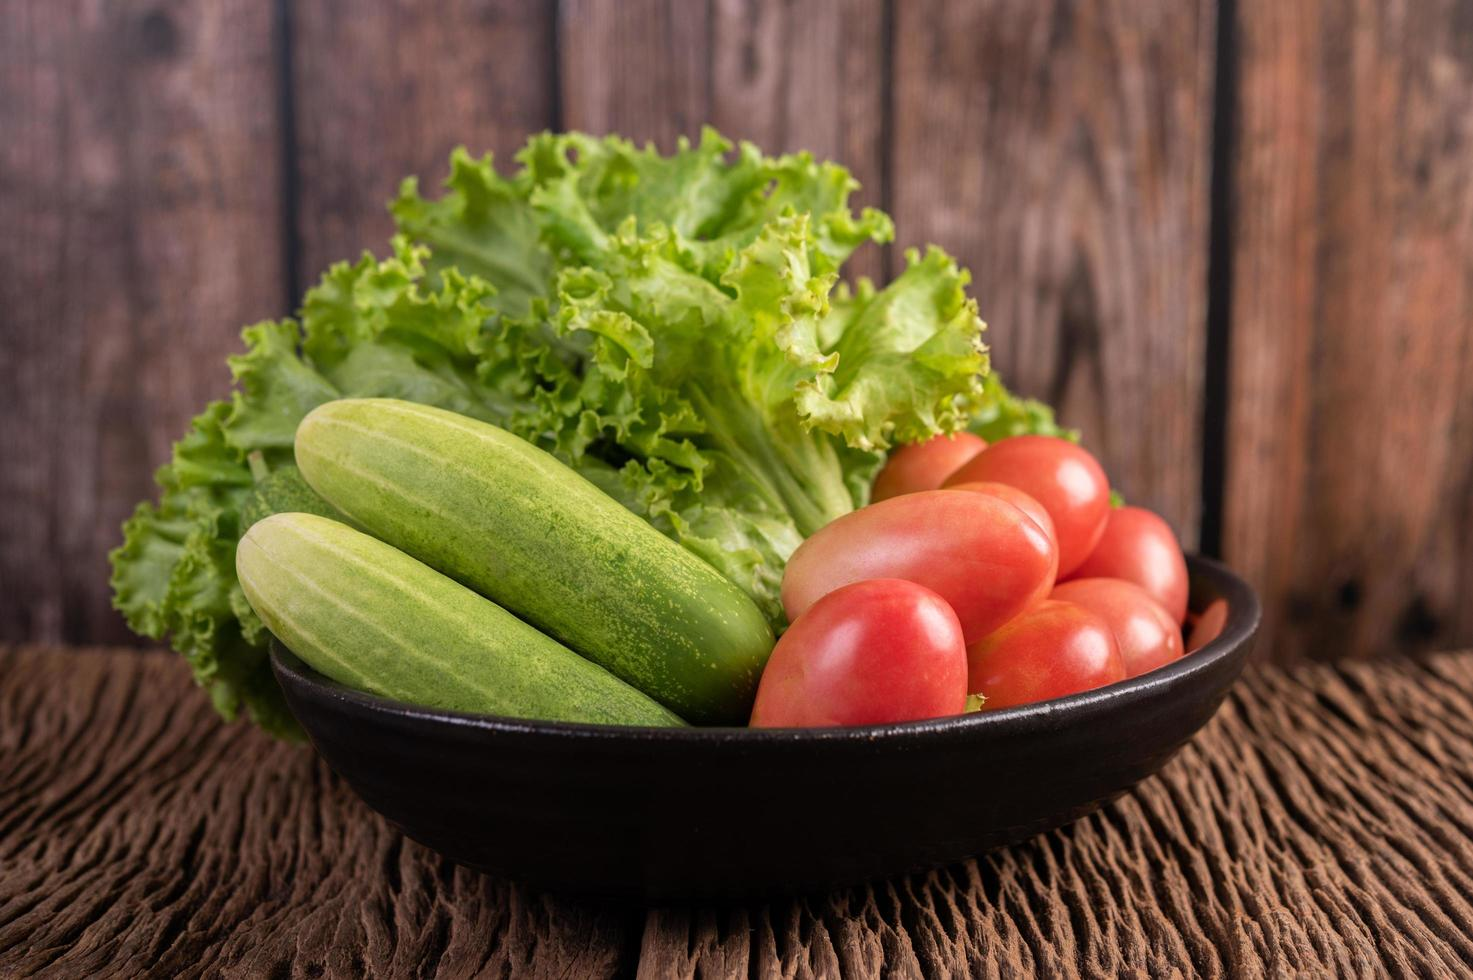 Lettuce, tomatoes and cucumber photo